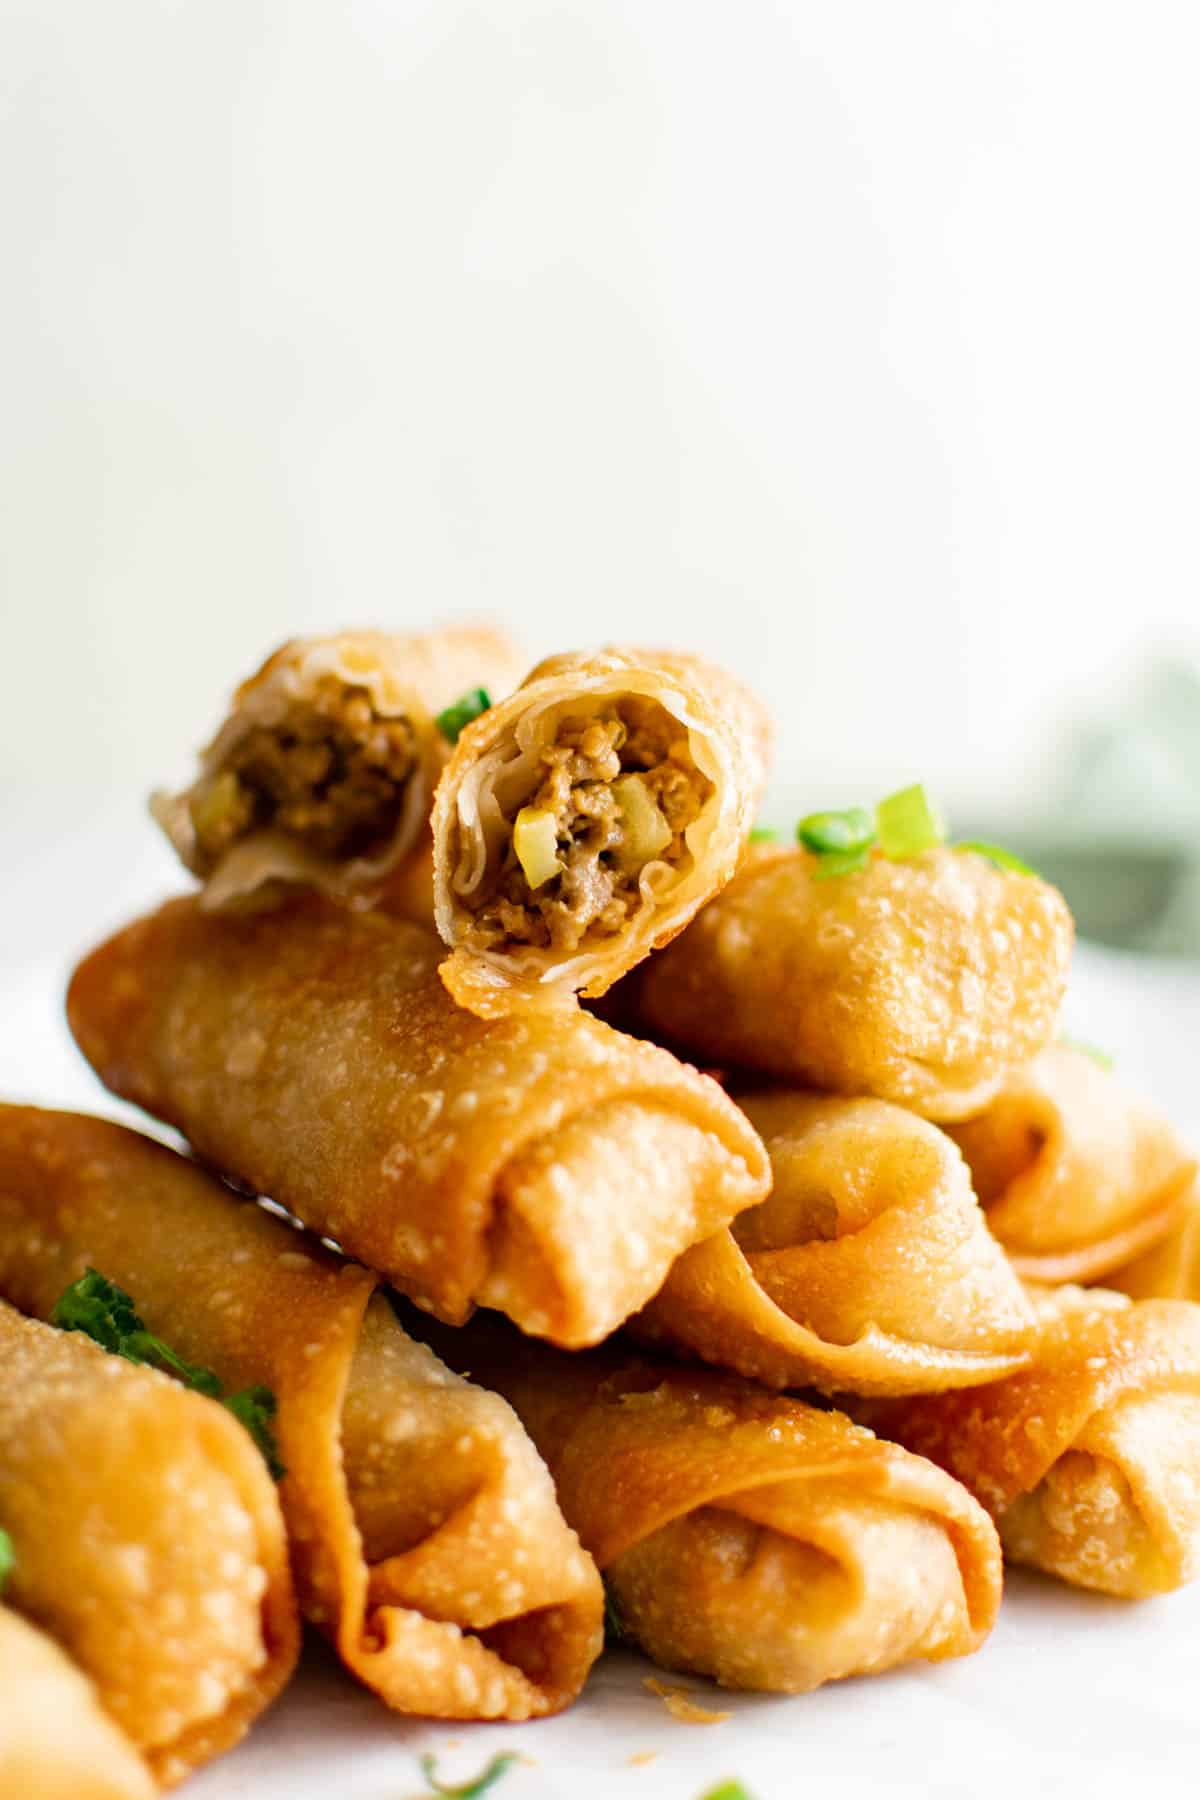 cheeseburger egg rolls stacked on top of each other